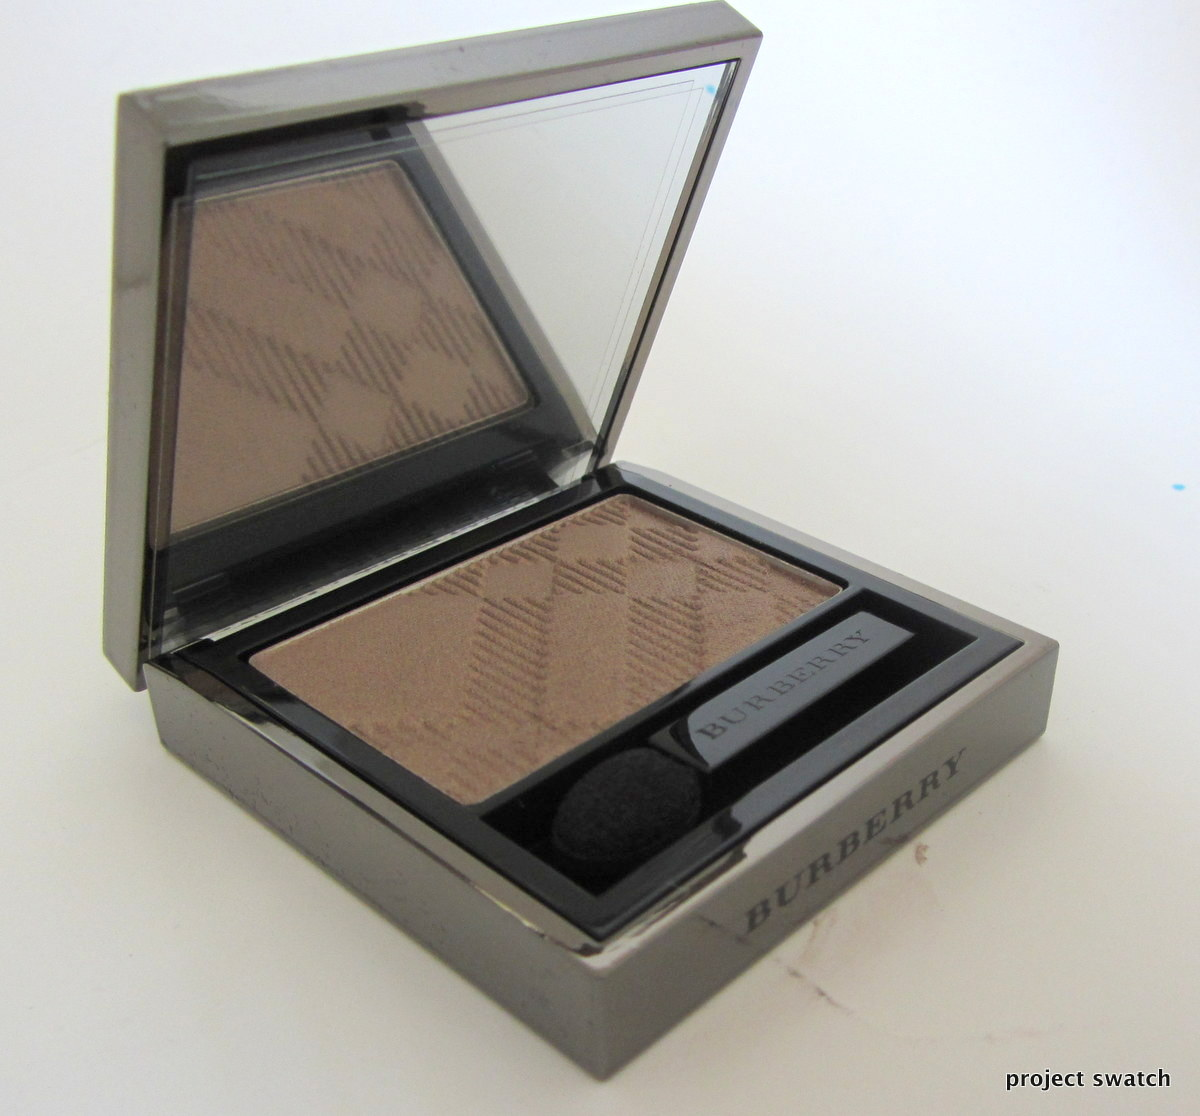 Burberry Pale Barley